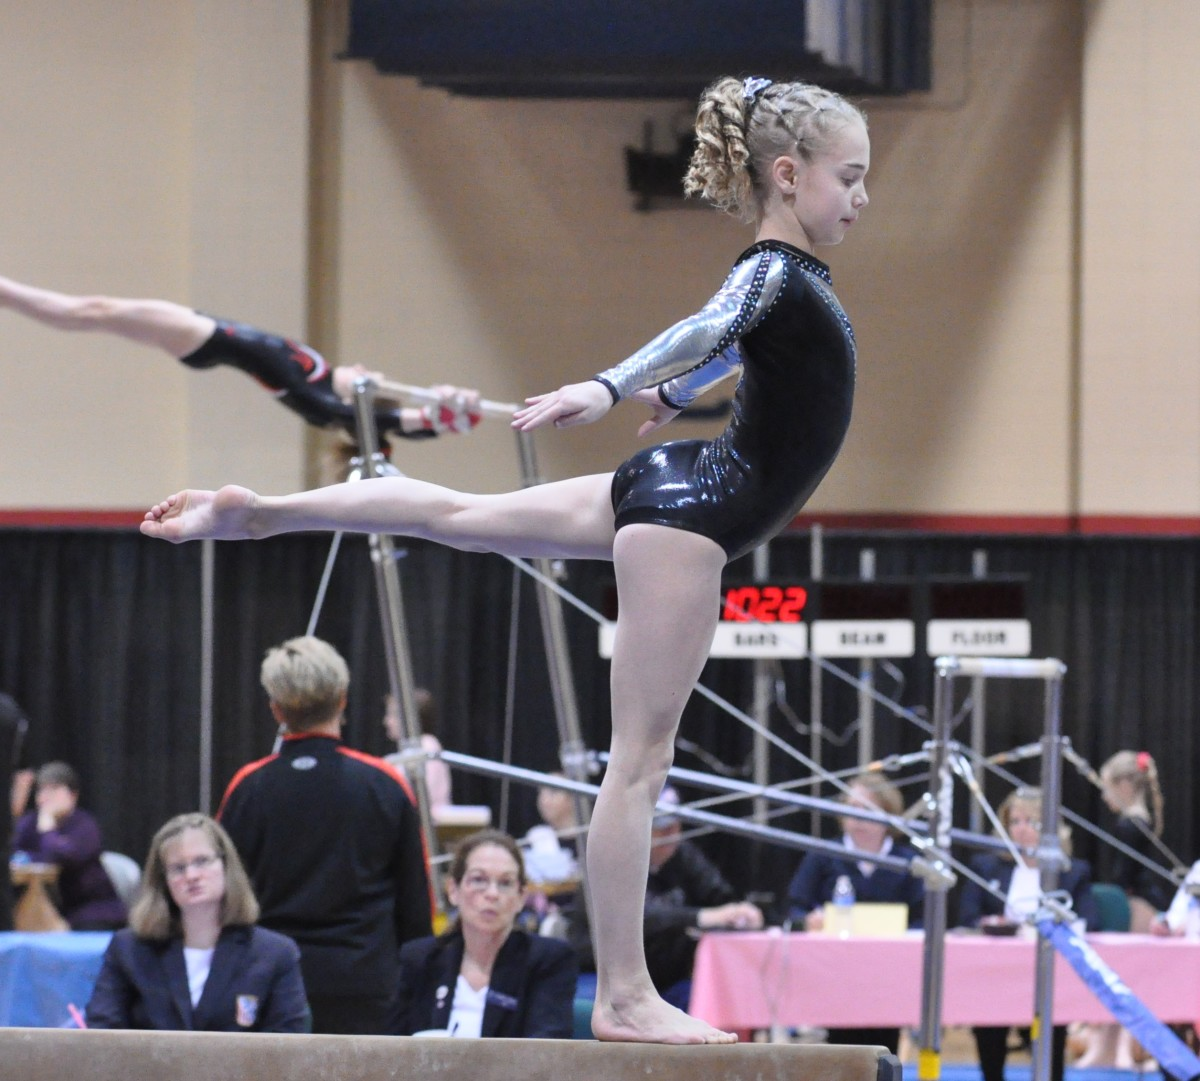 How to Teach and Coach Gymnastics to Kids: Build a Great Foundation